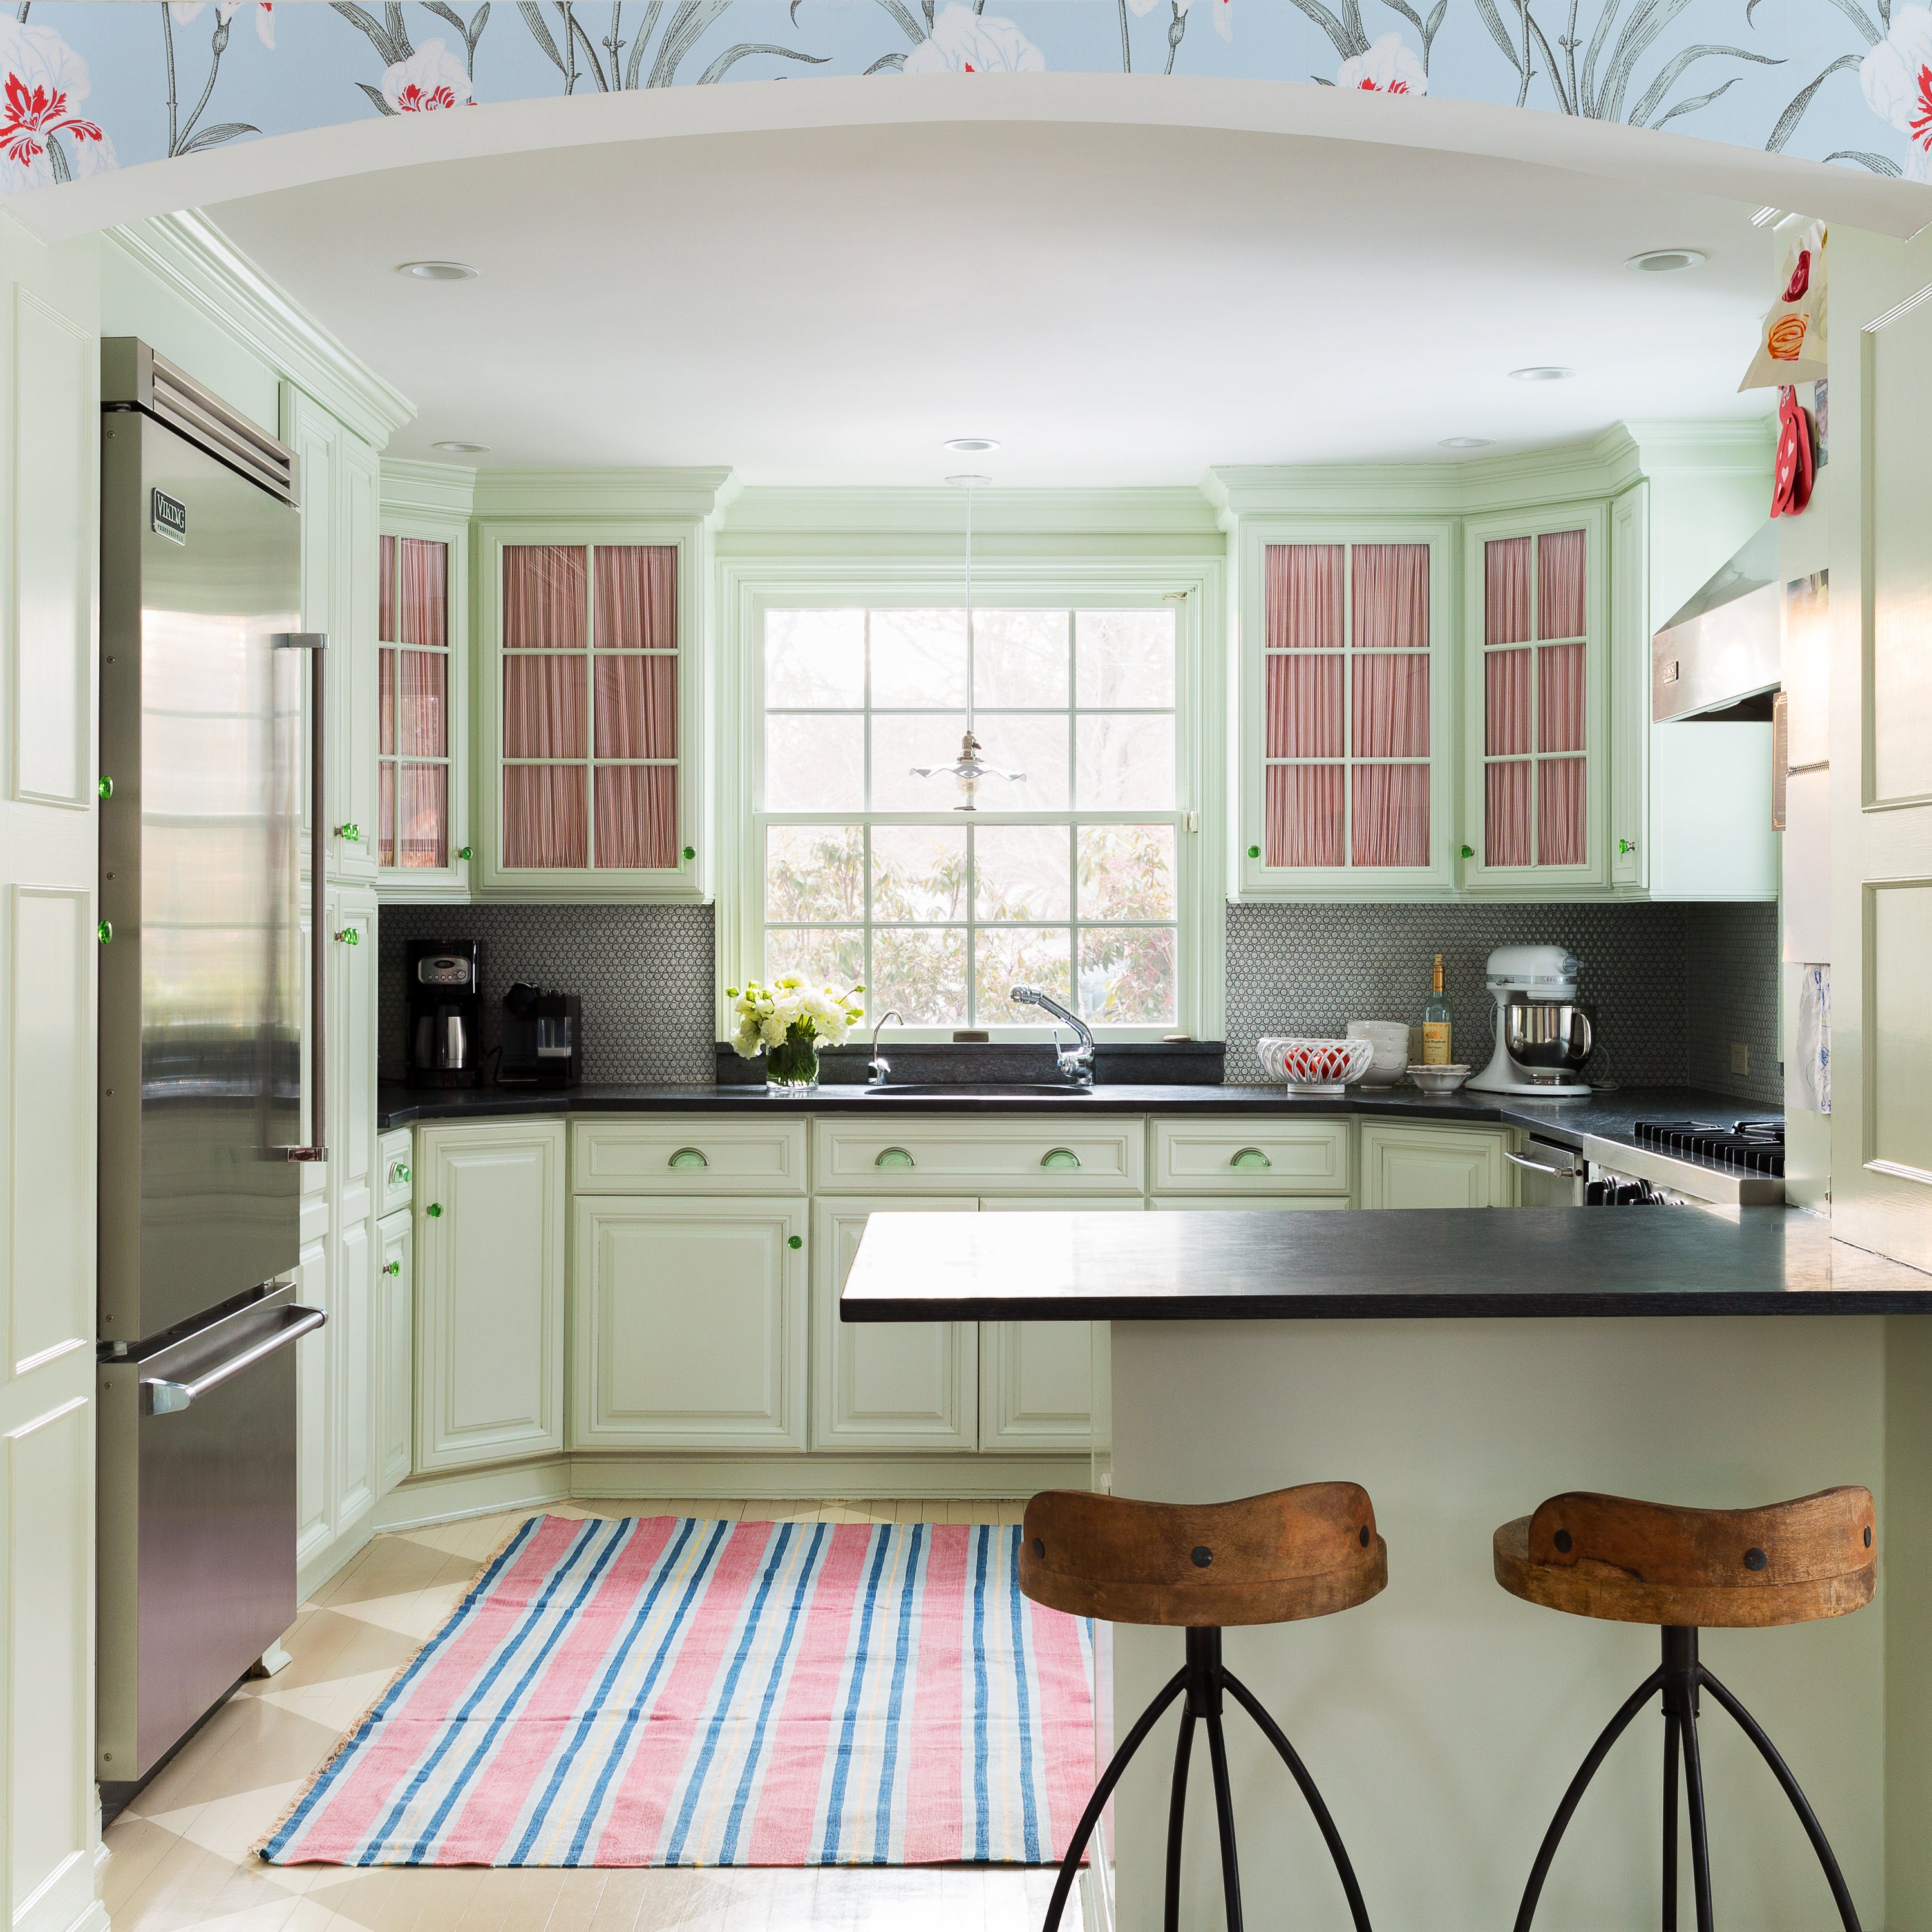 Kitchen By Kemble Interiors, Inc. On 1stdibs